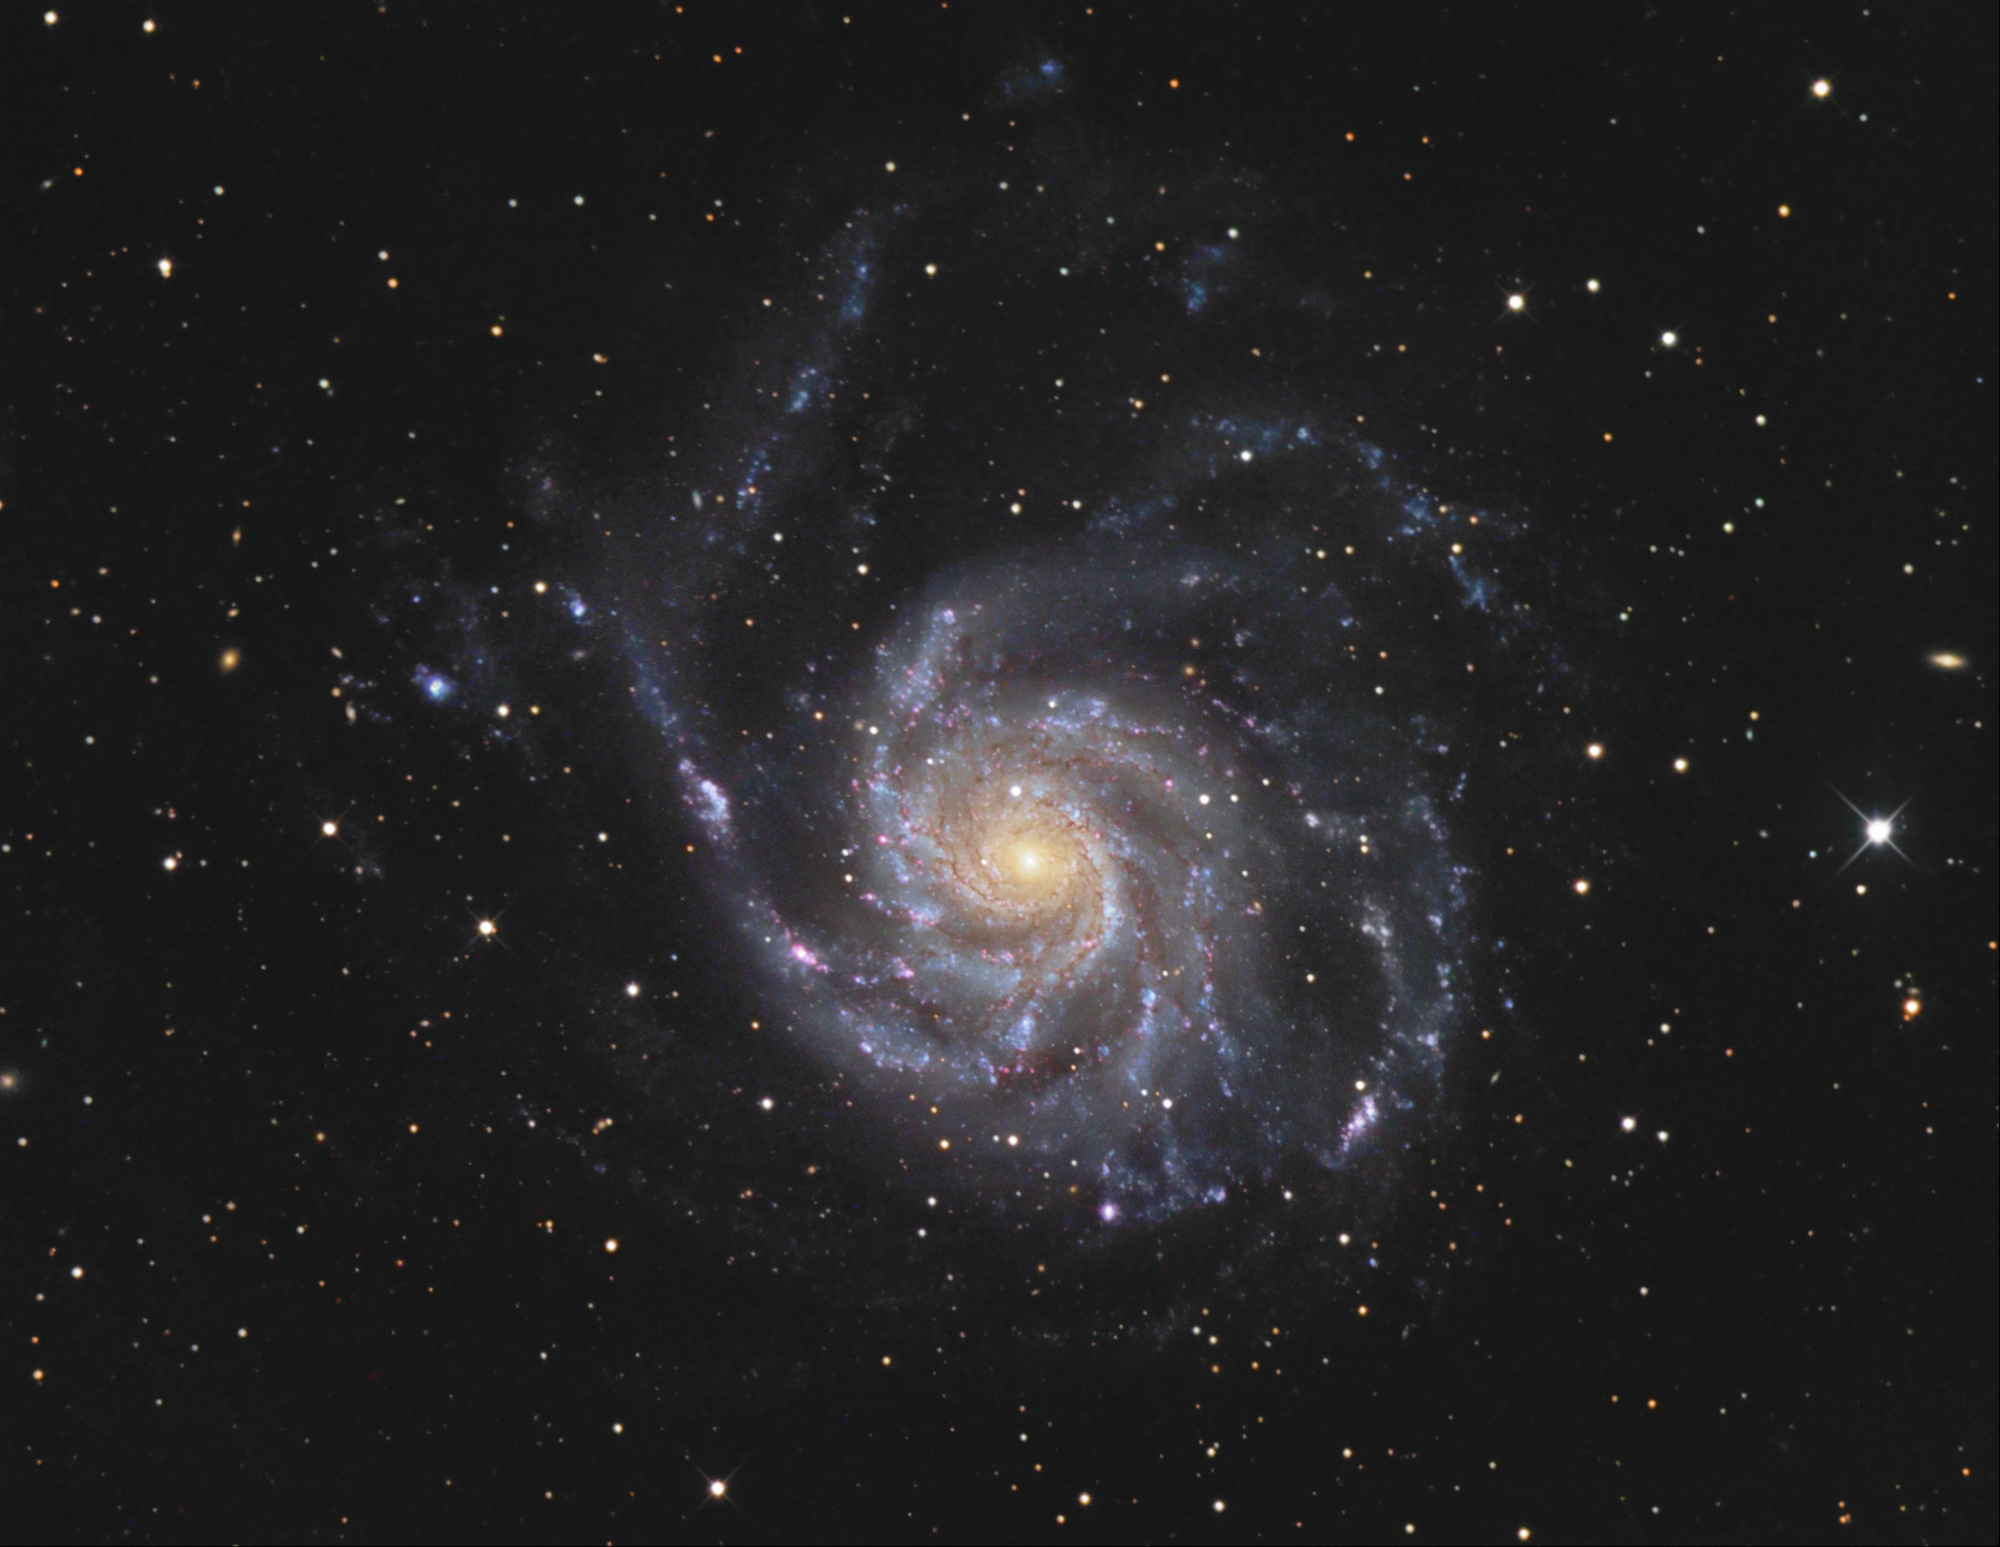 m101_lrvb_25avril19_ct16_at12in.thumb.jpg.b647b02087a31e37661a35e0b2b616bc.jpg